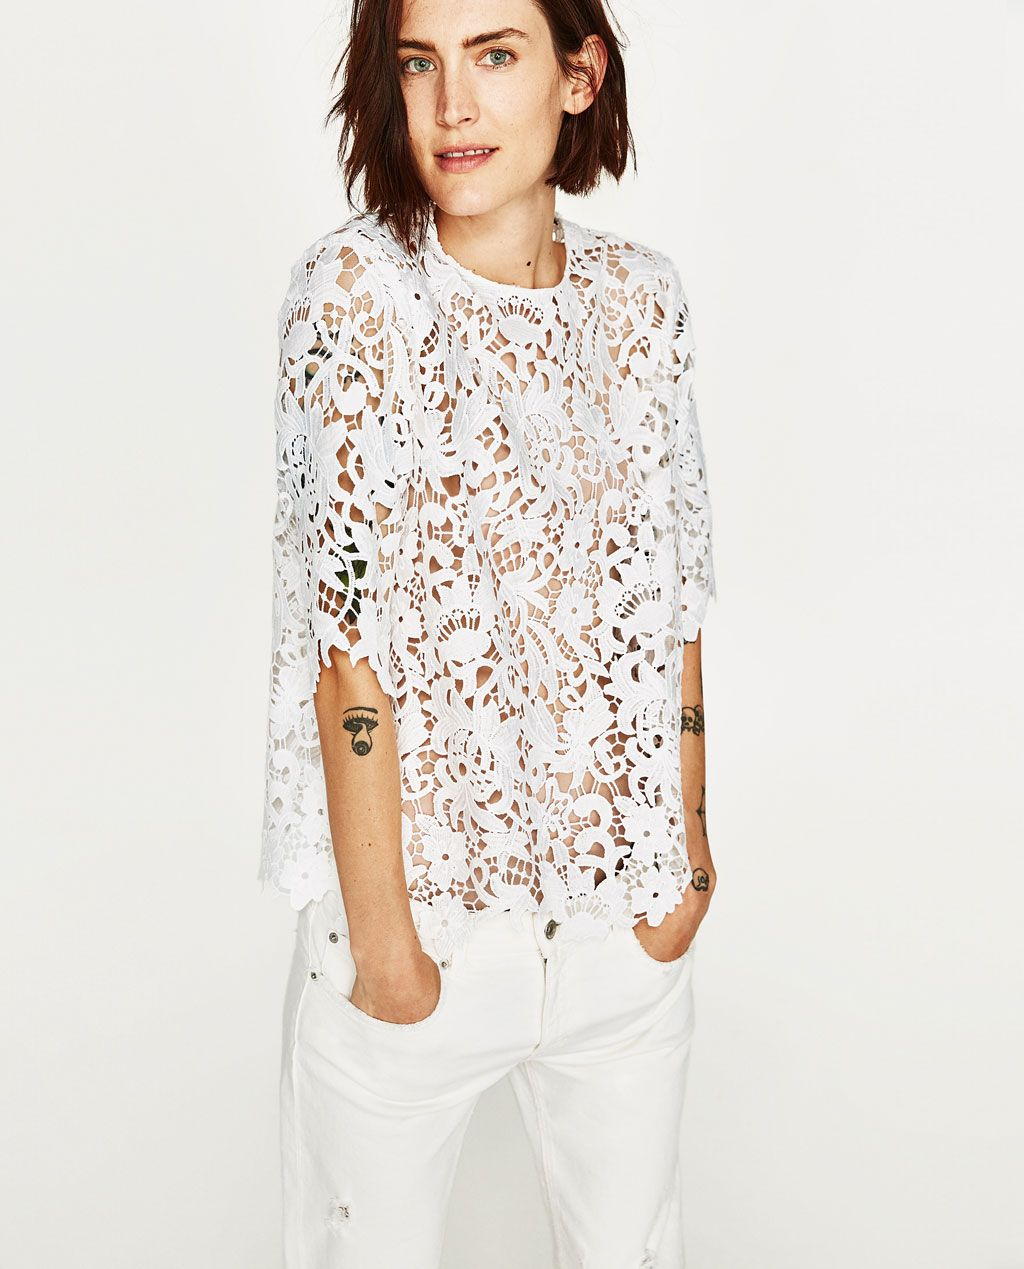 1133f4f9d6 LACE TOP-Blouses-TOPS-WOMAN